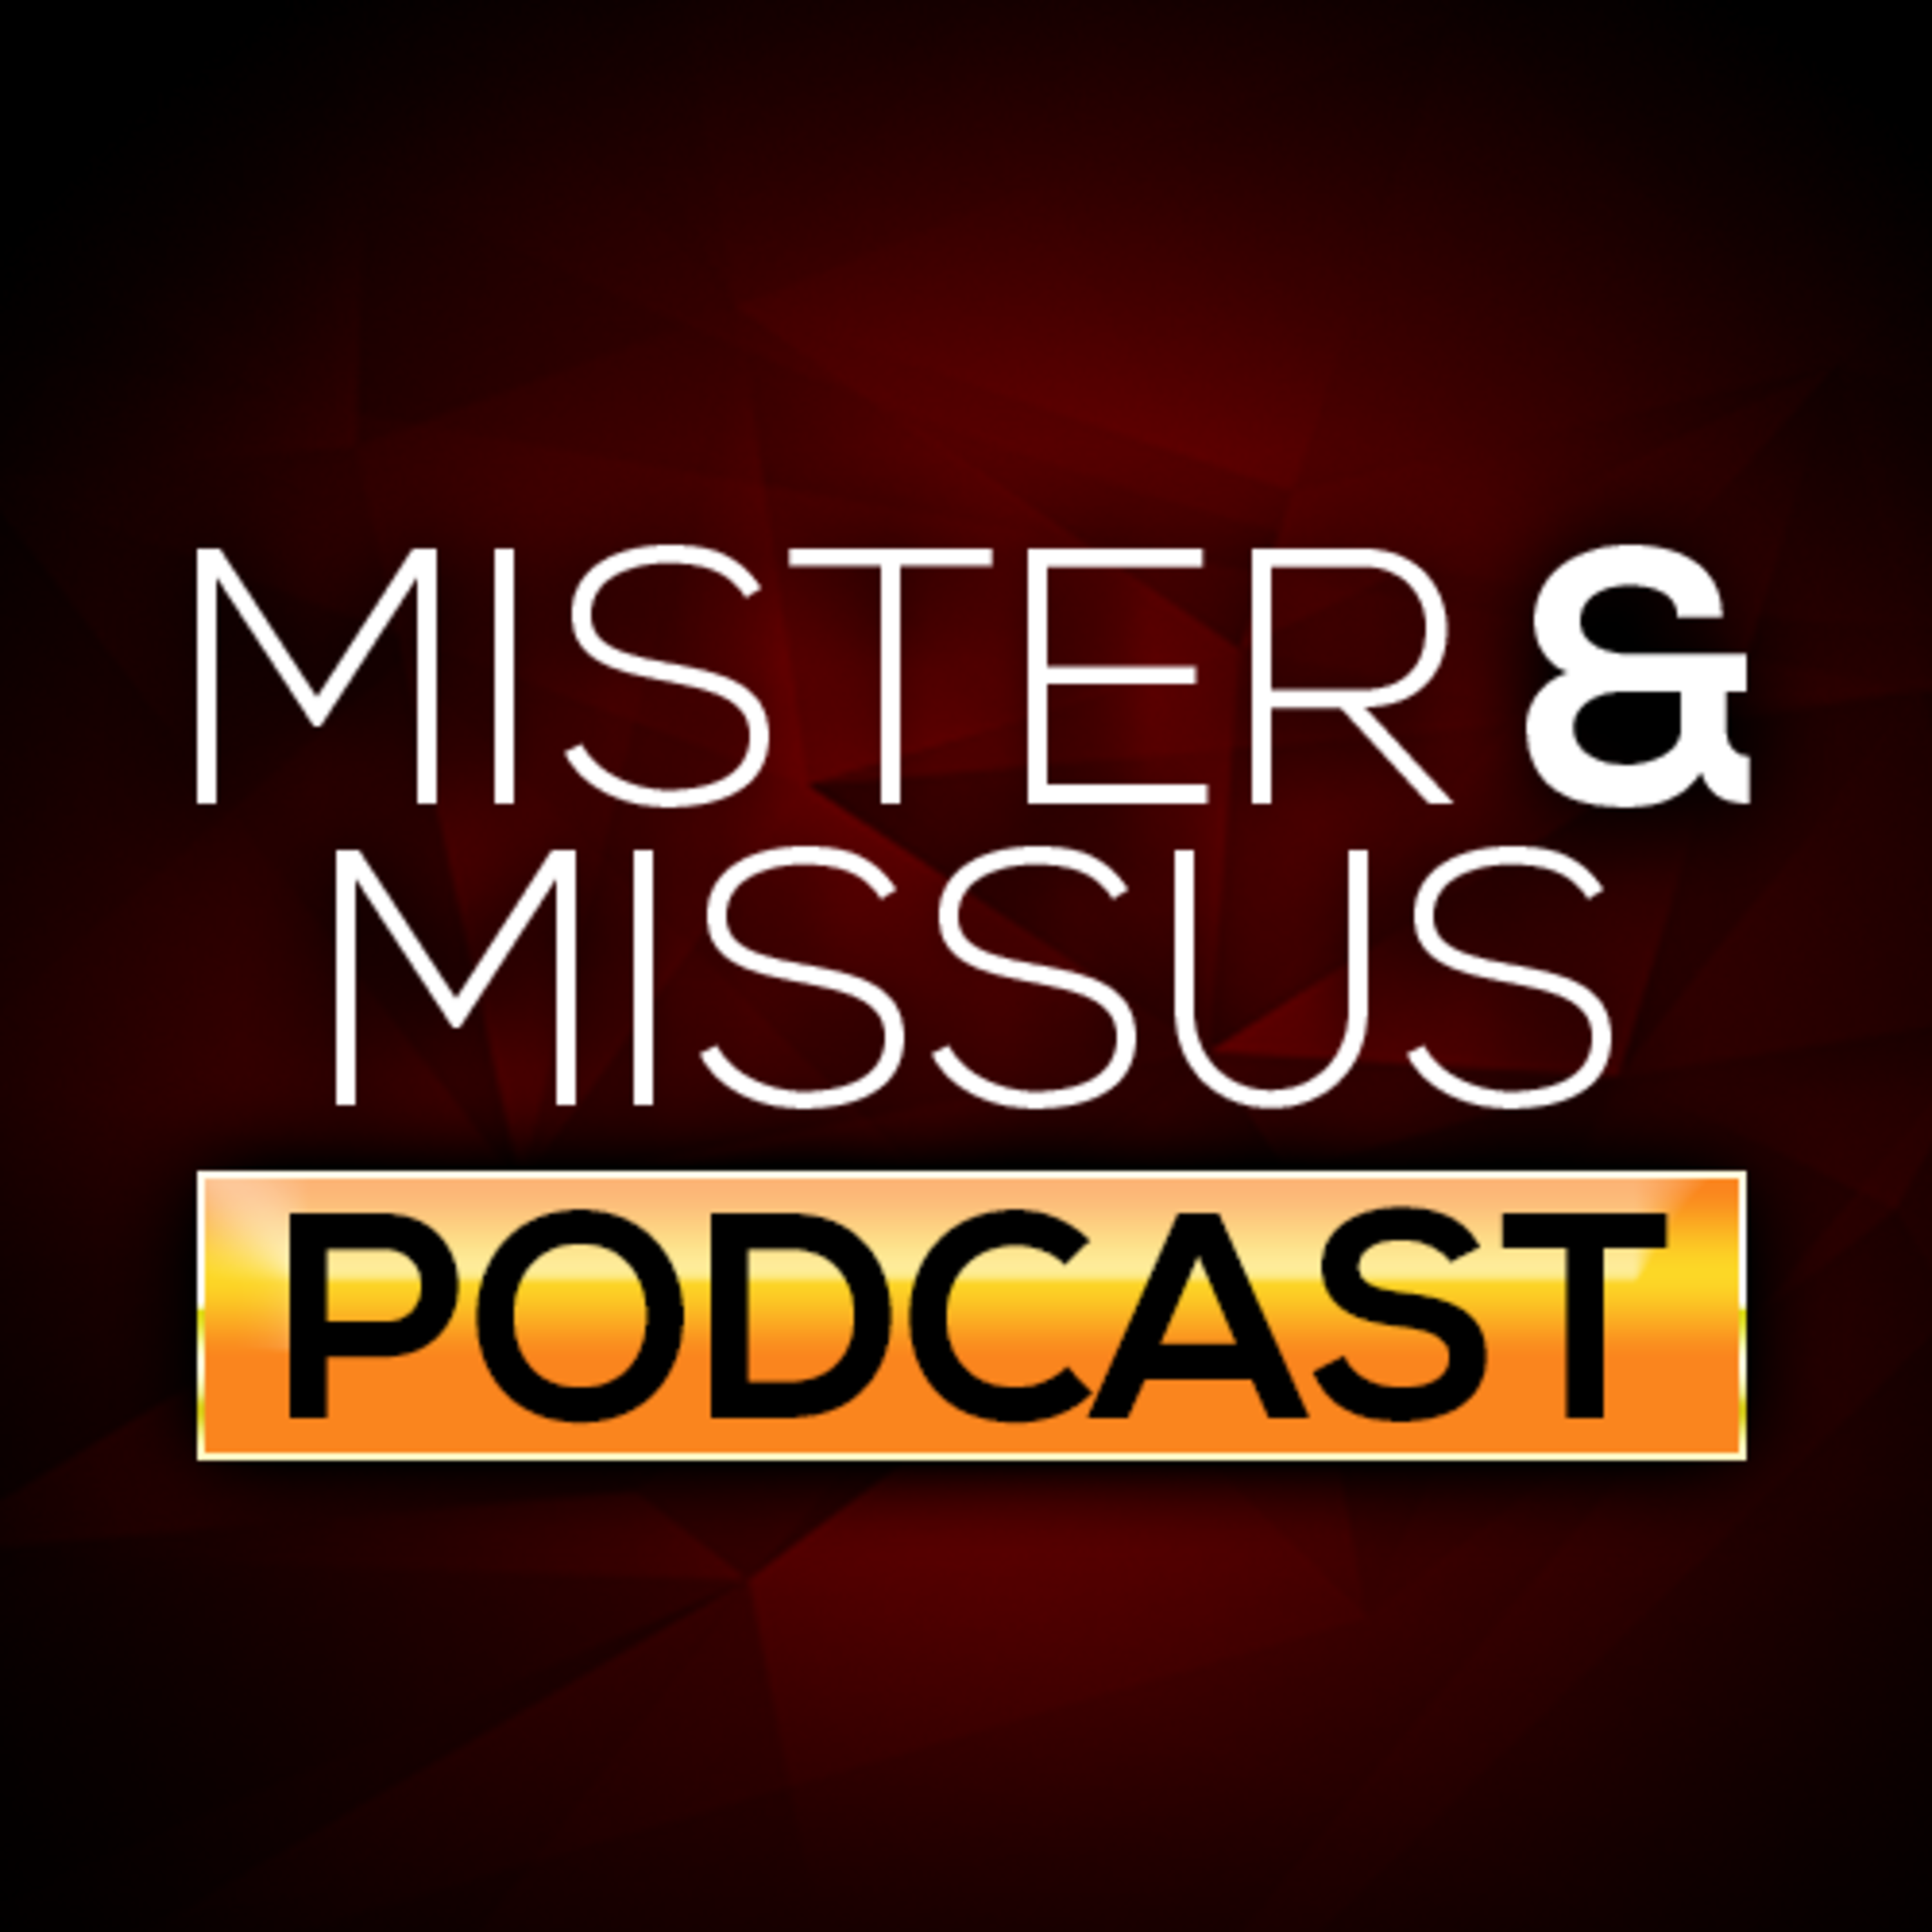 Mister and Missus Podcast